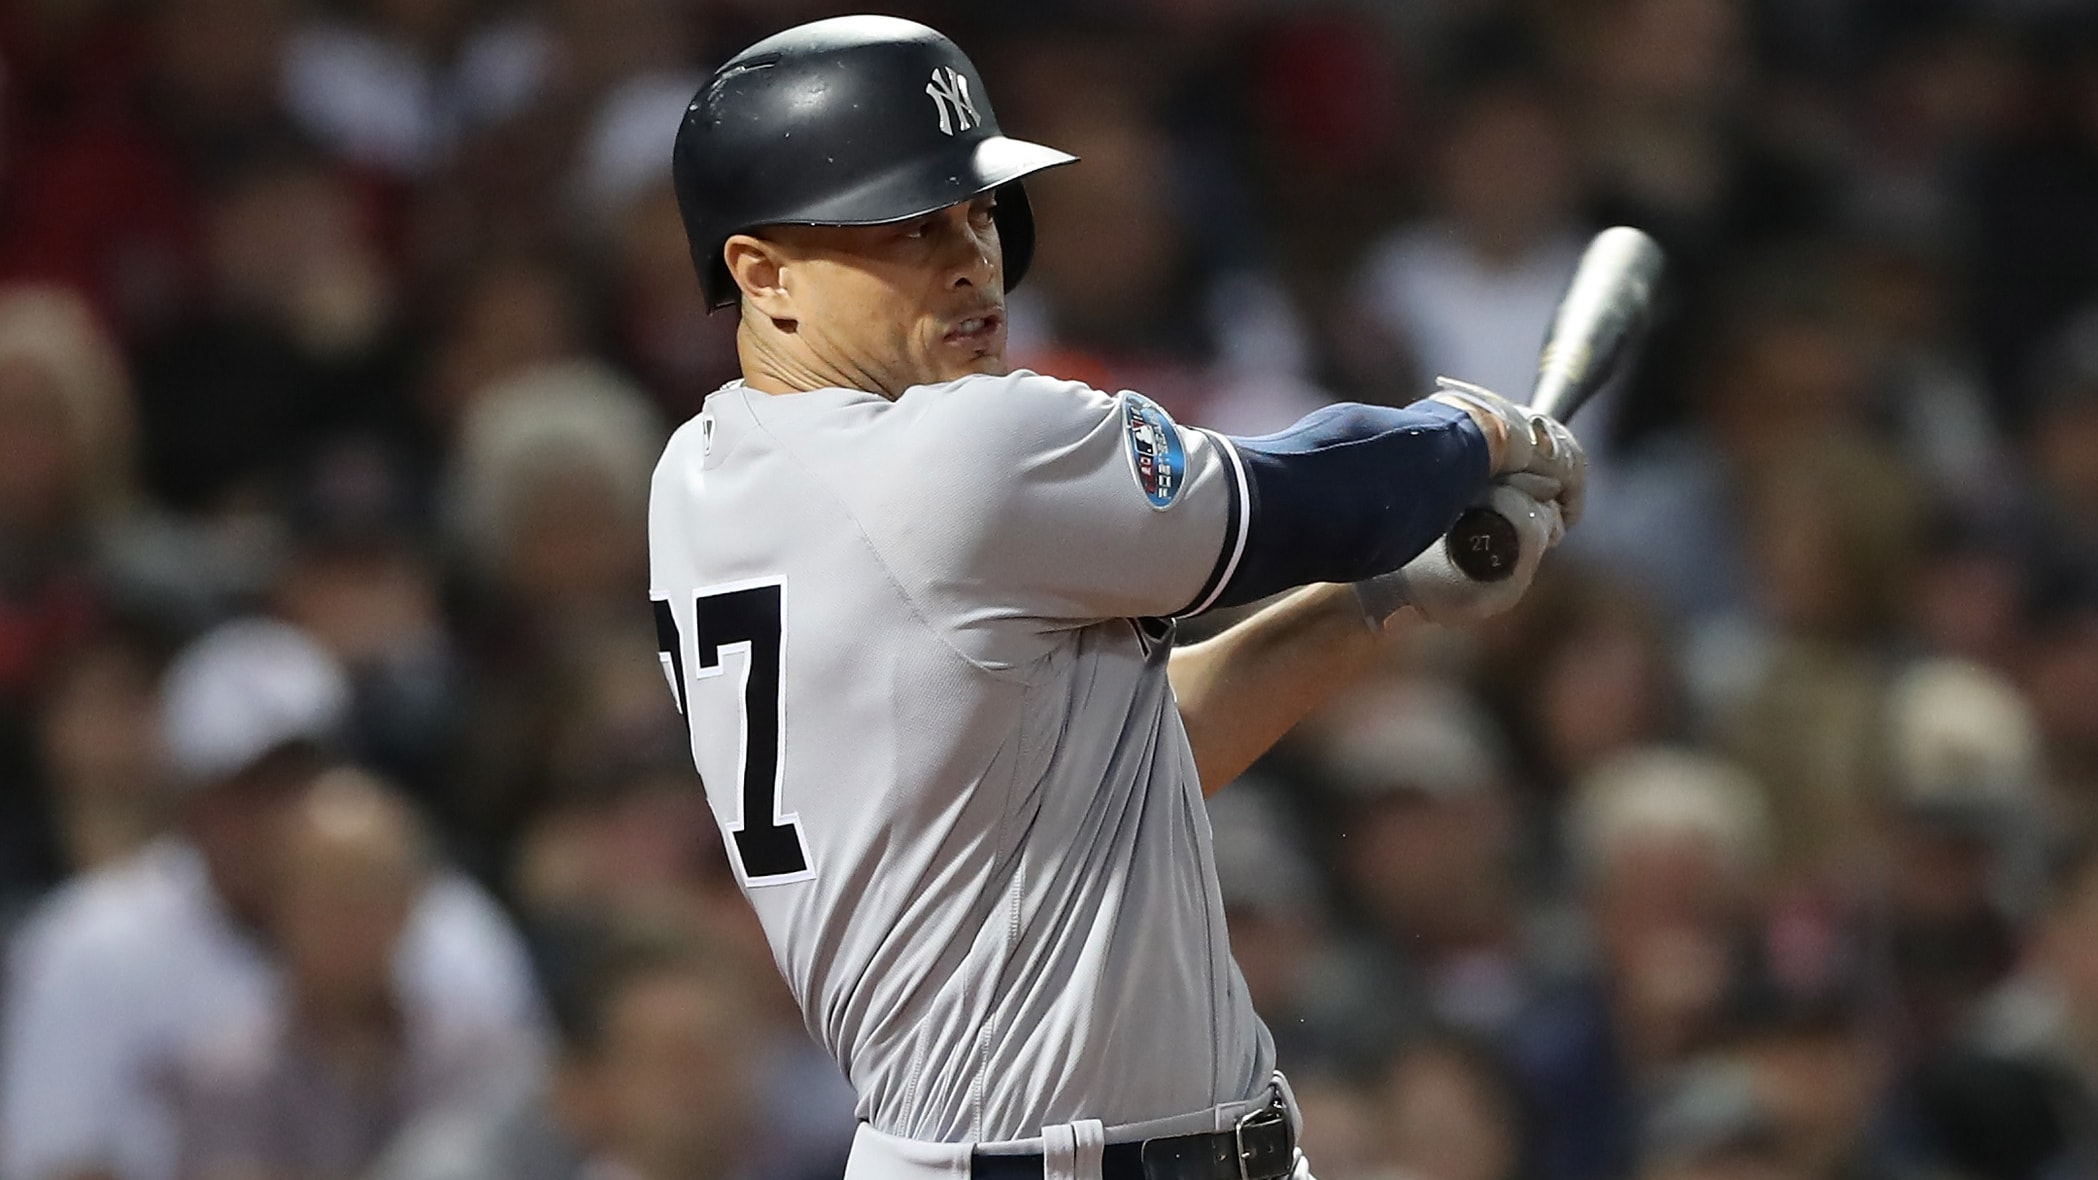 BOSTON, MA - OCTOBER 06:  Giancarlo Stanton #27 of the New York Yankees hits an infield single during the seventh inning of Game Two of the American League Division Series against the Boston Red Sox at Fenway Park on October 6, 2018 in Boston, Massachusetts.  (Photo by Elsa/Getty Images)